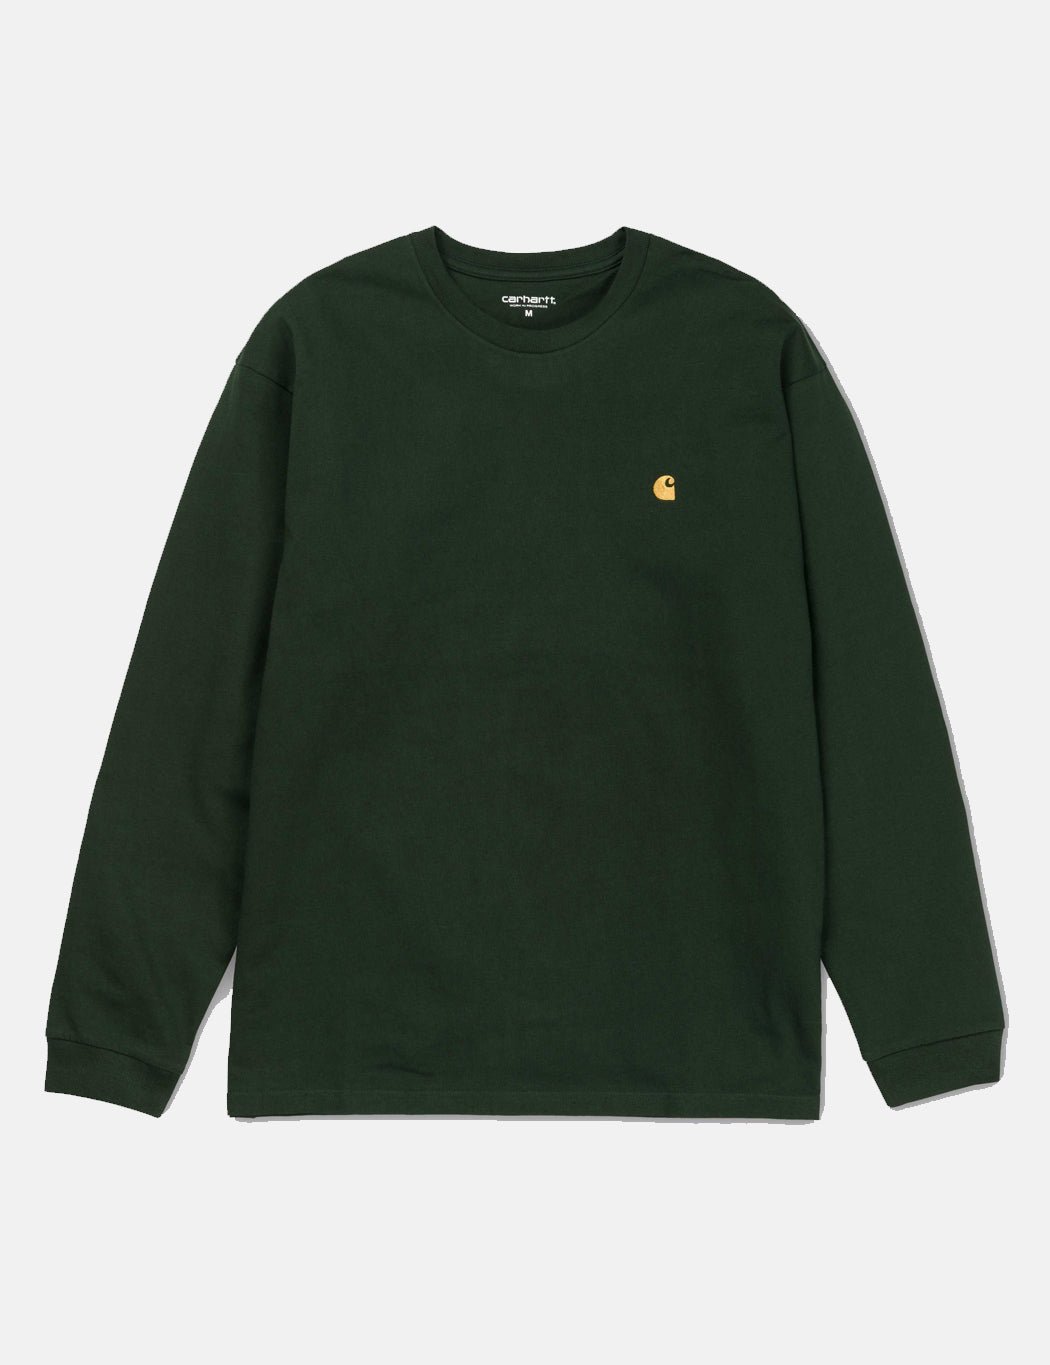 Carhartt Chase Long Sleeve T-Shirt - Loden Green